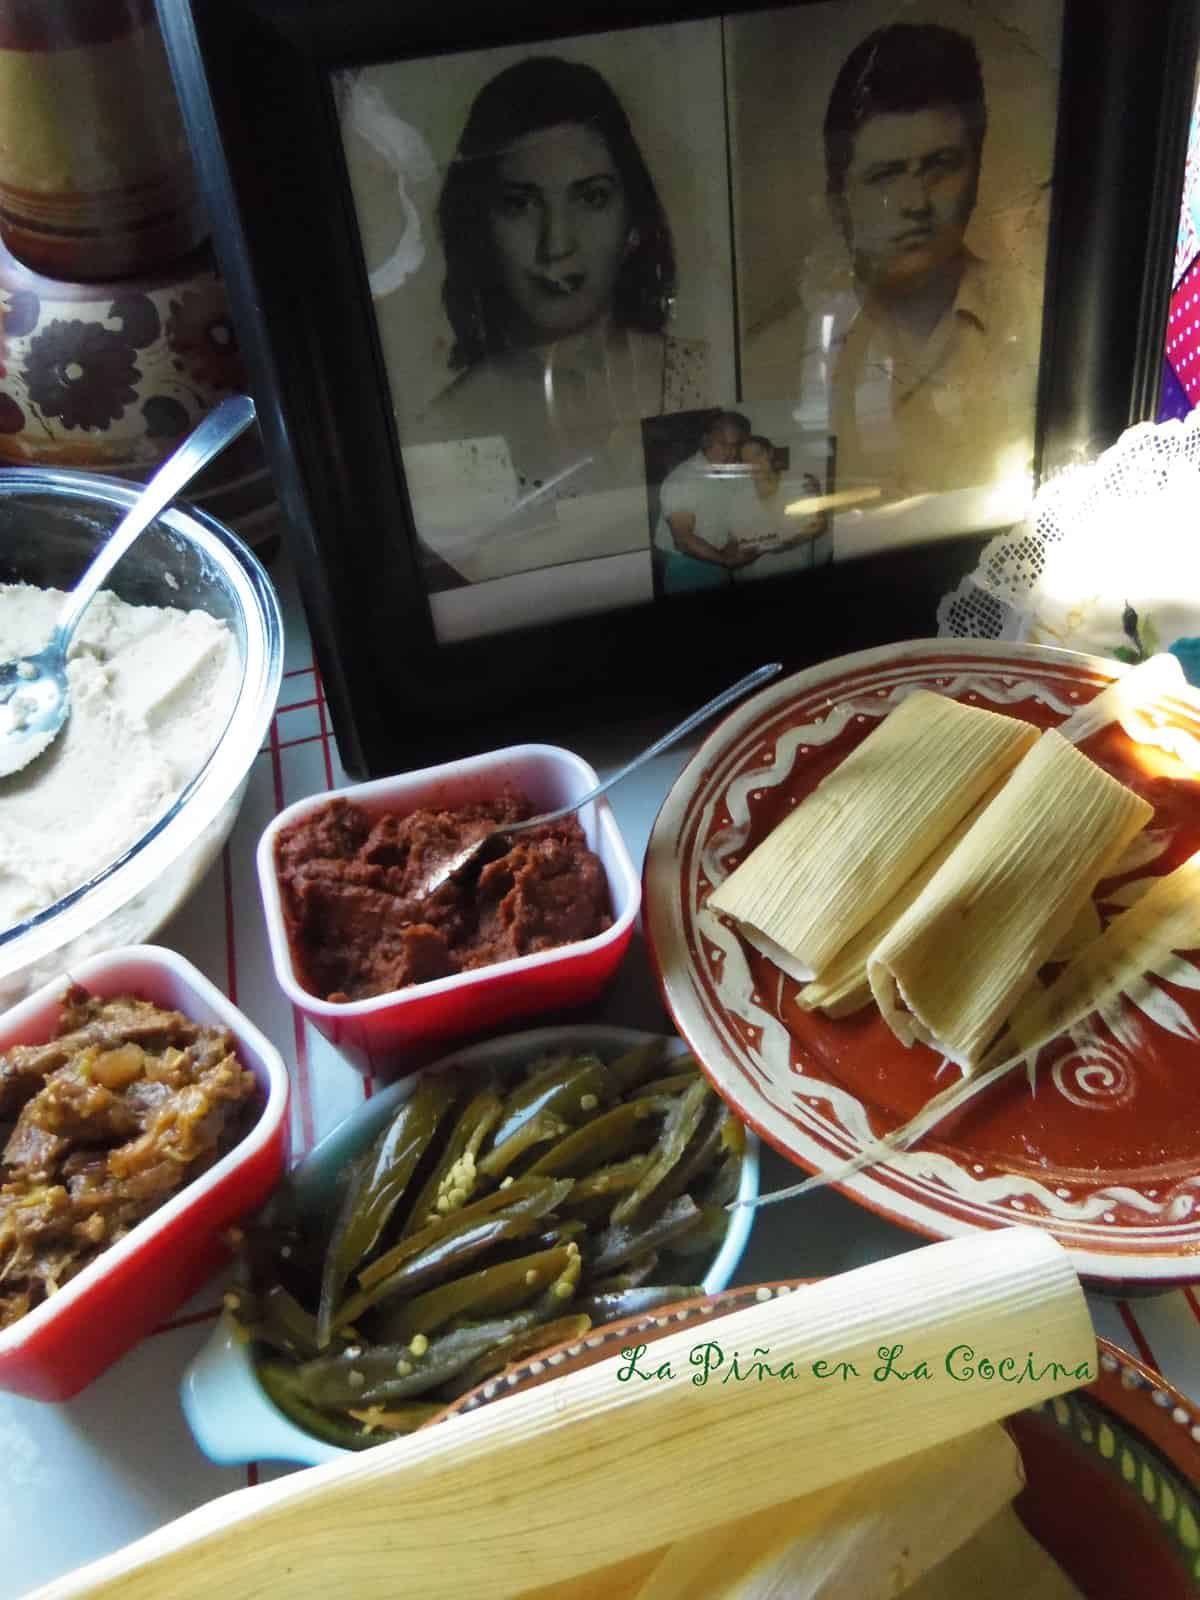 When assembling the tamales, it's best to set up a n assembly line of all the ingredients you will need.